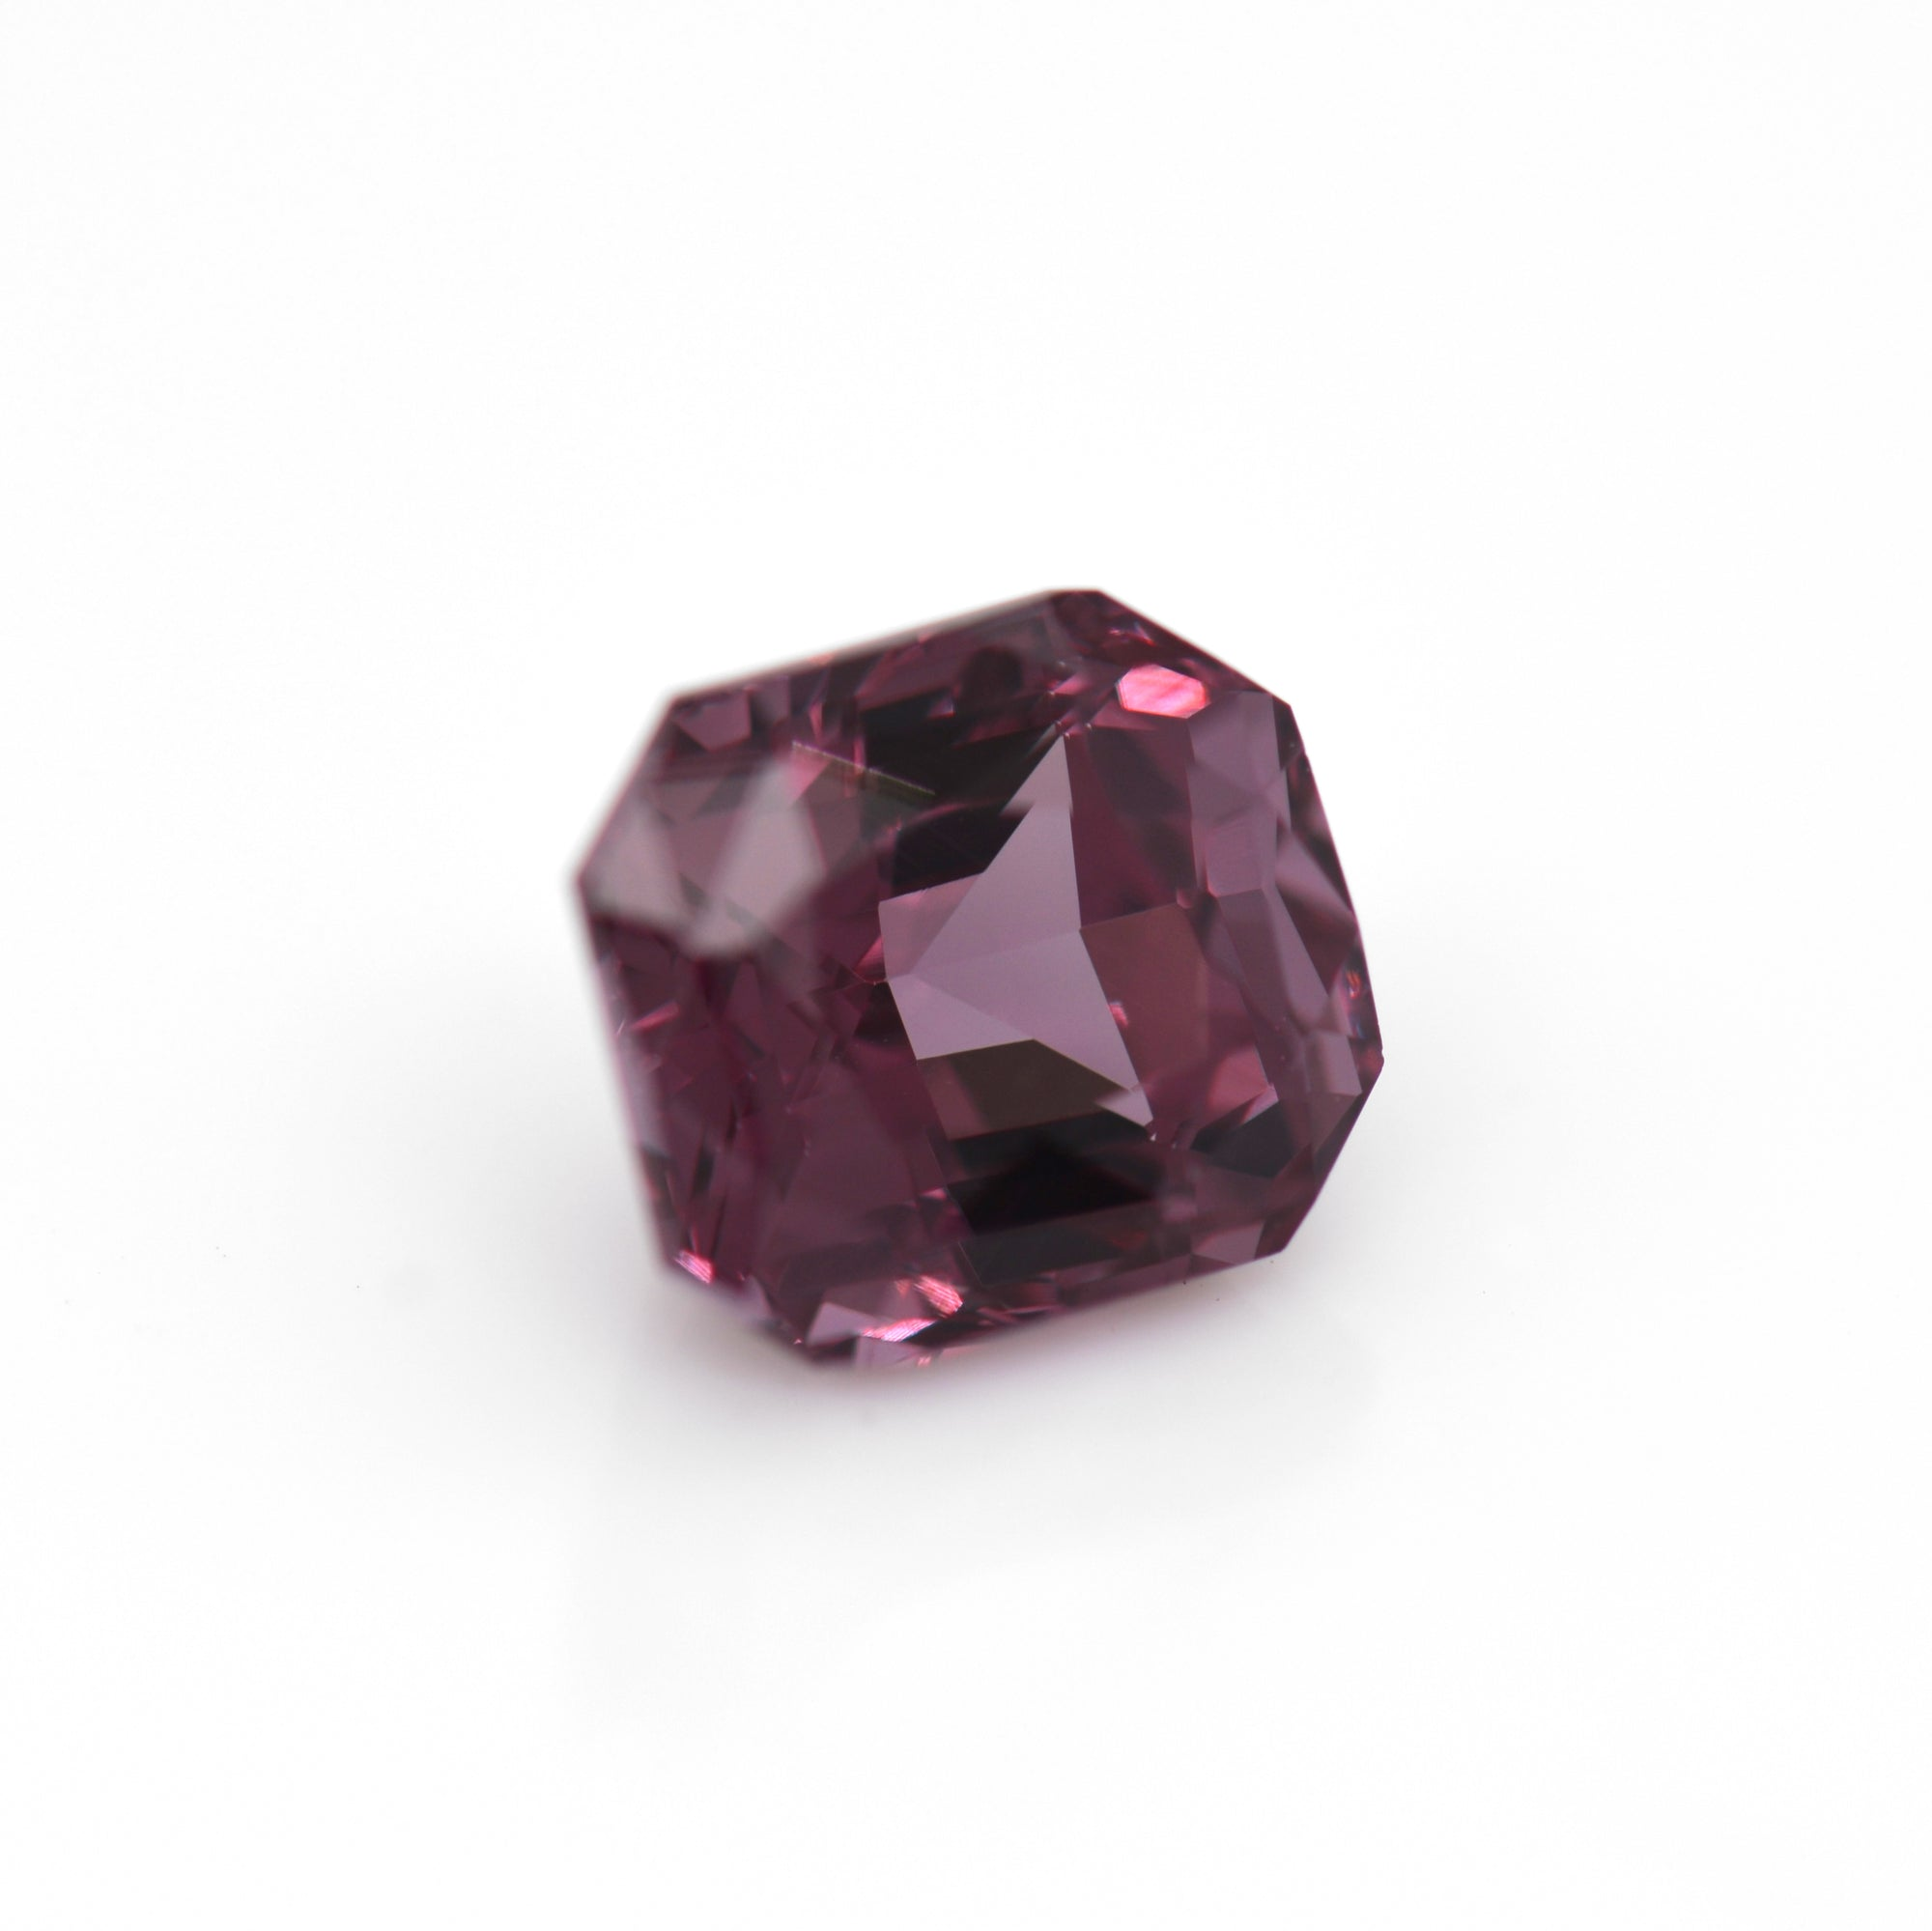 2.85 Carat Color Change Purple Garnet